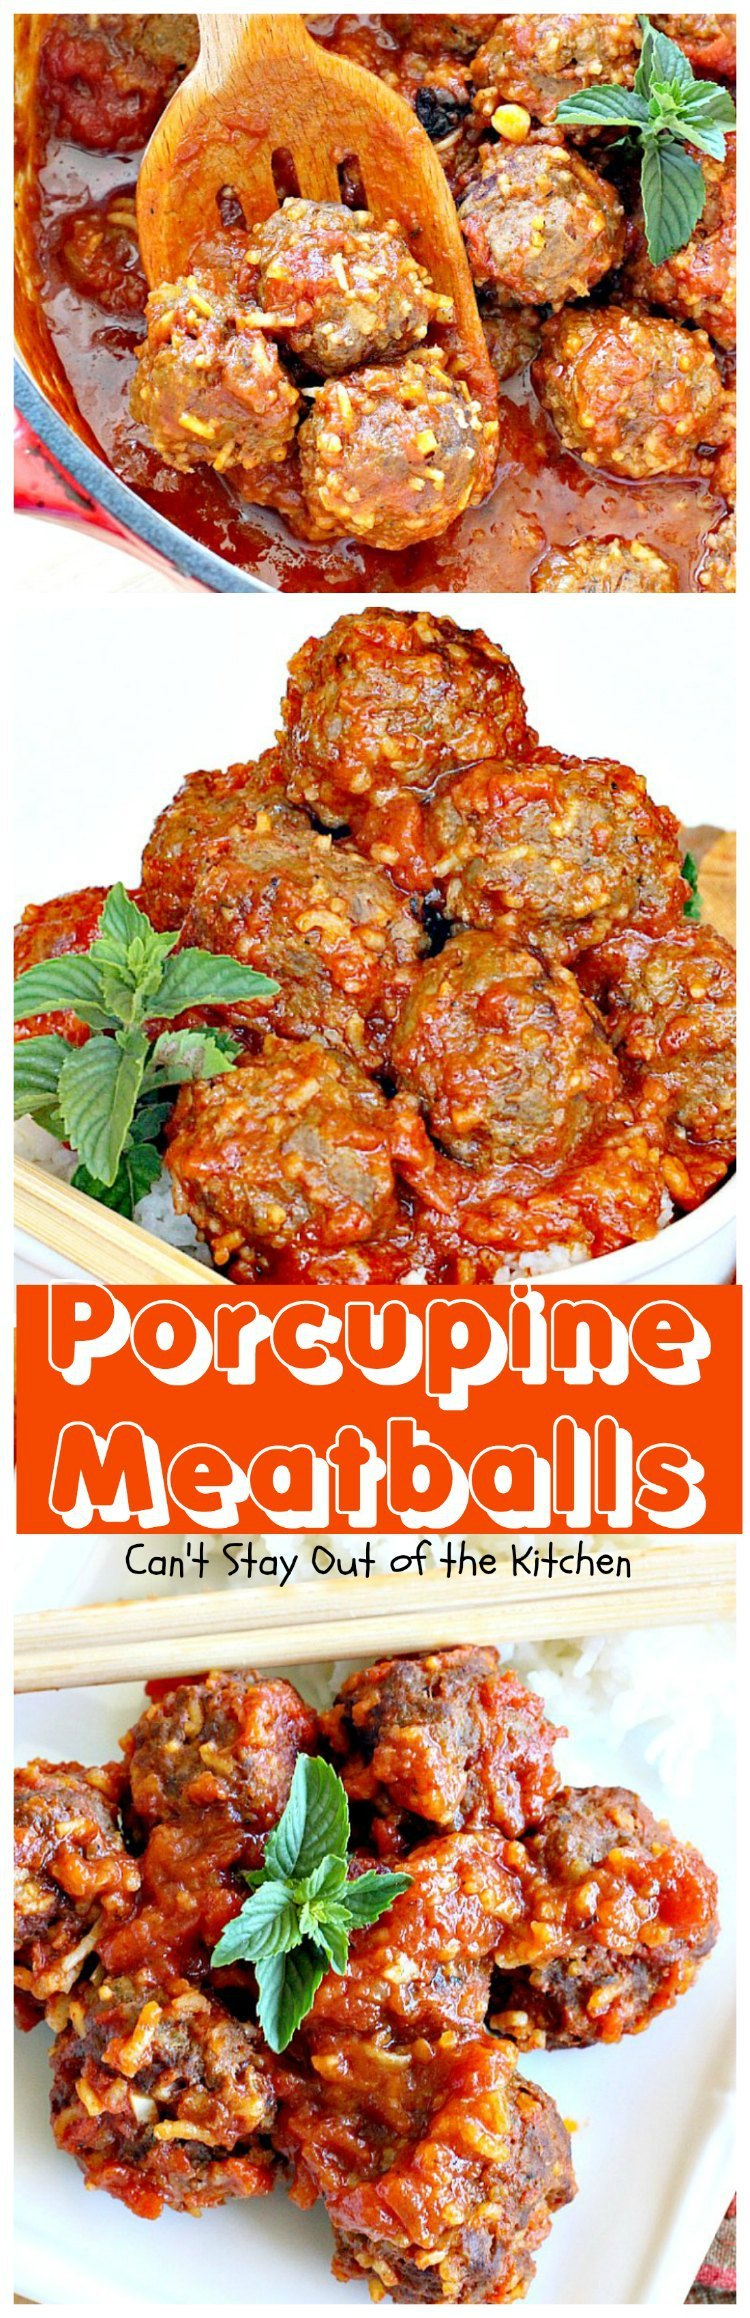 Barbecued Meatballs Can 39 T Stay Out Of The Kitchen